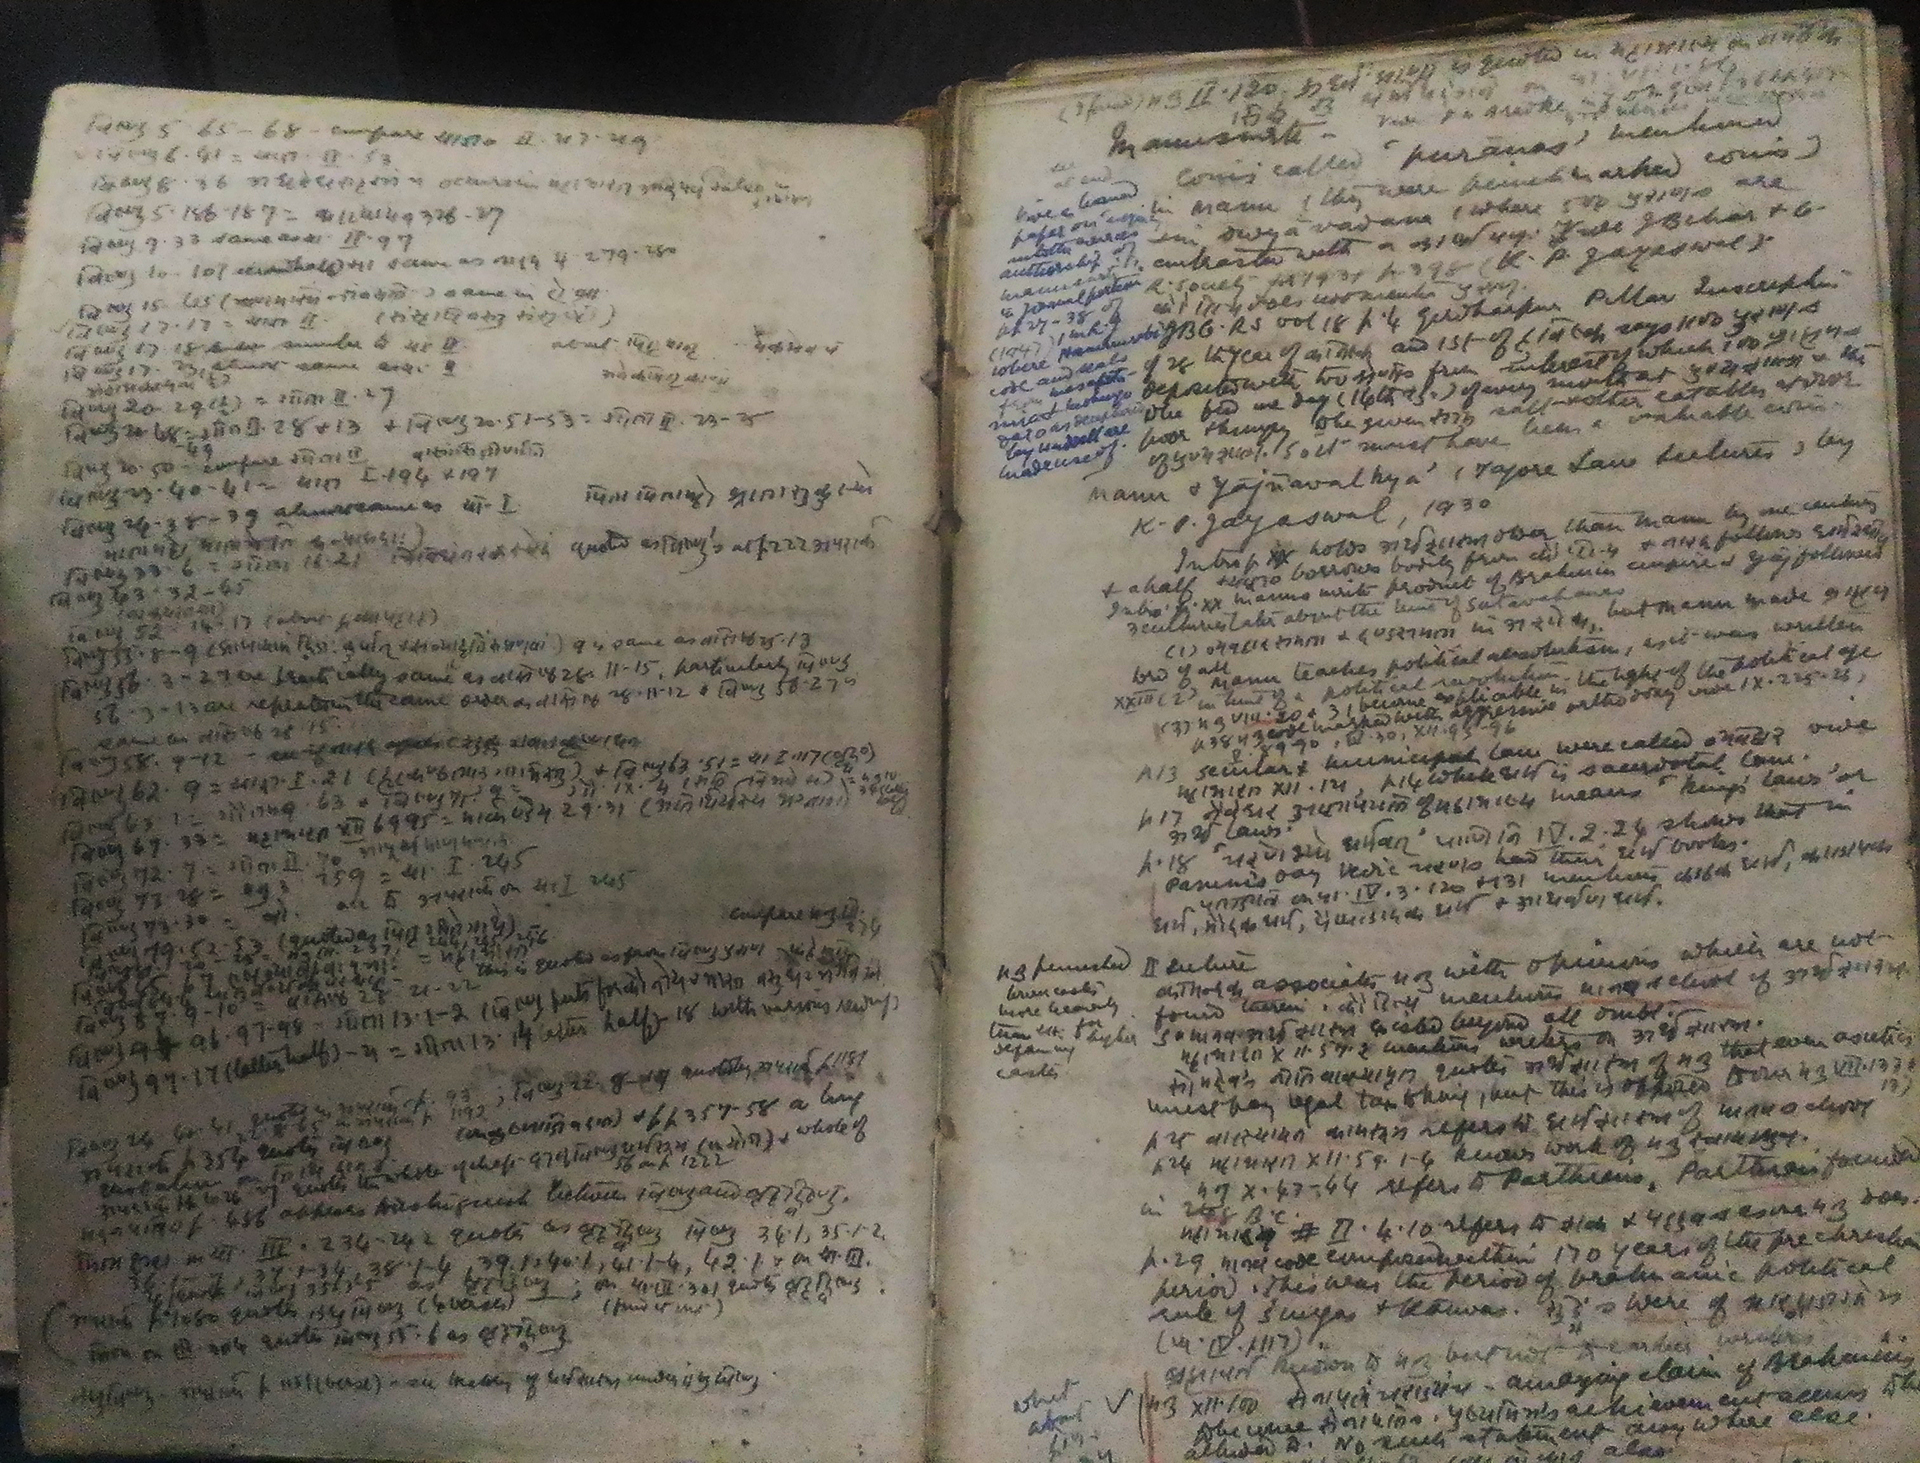 Dr. Kane's notes on the first edition of Vol. 1